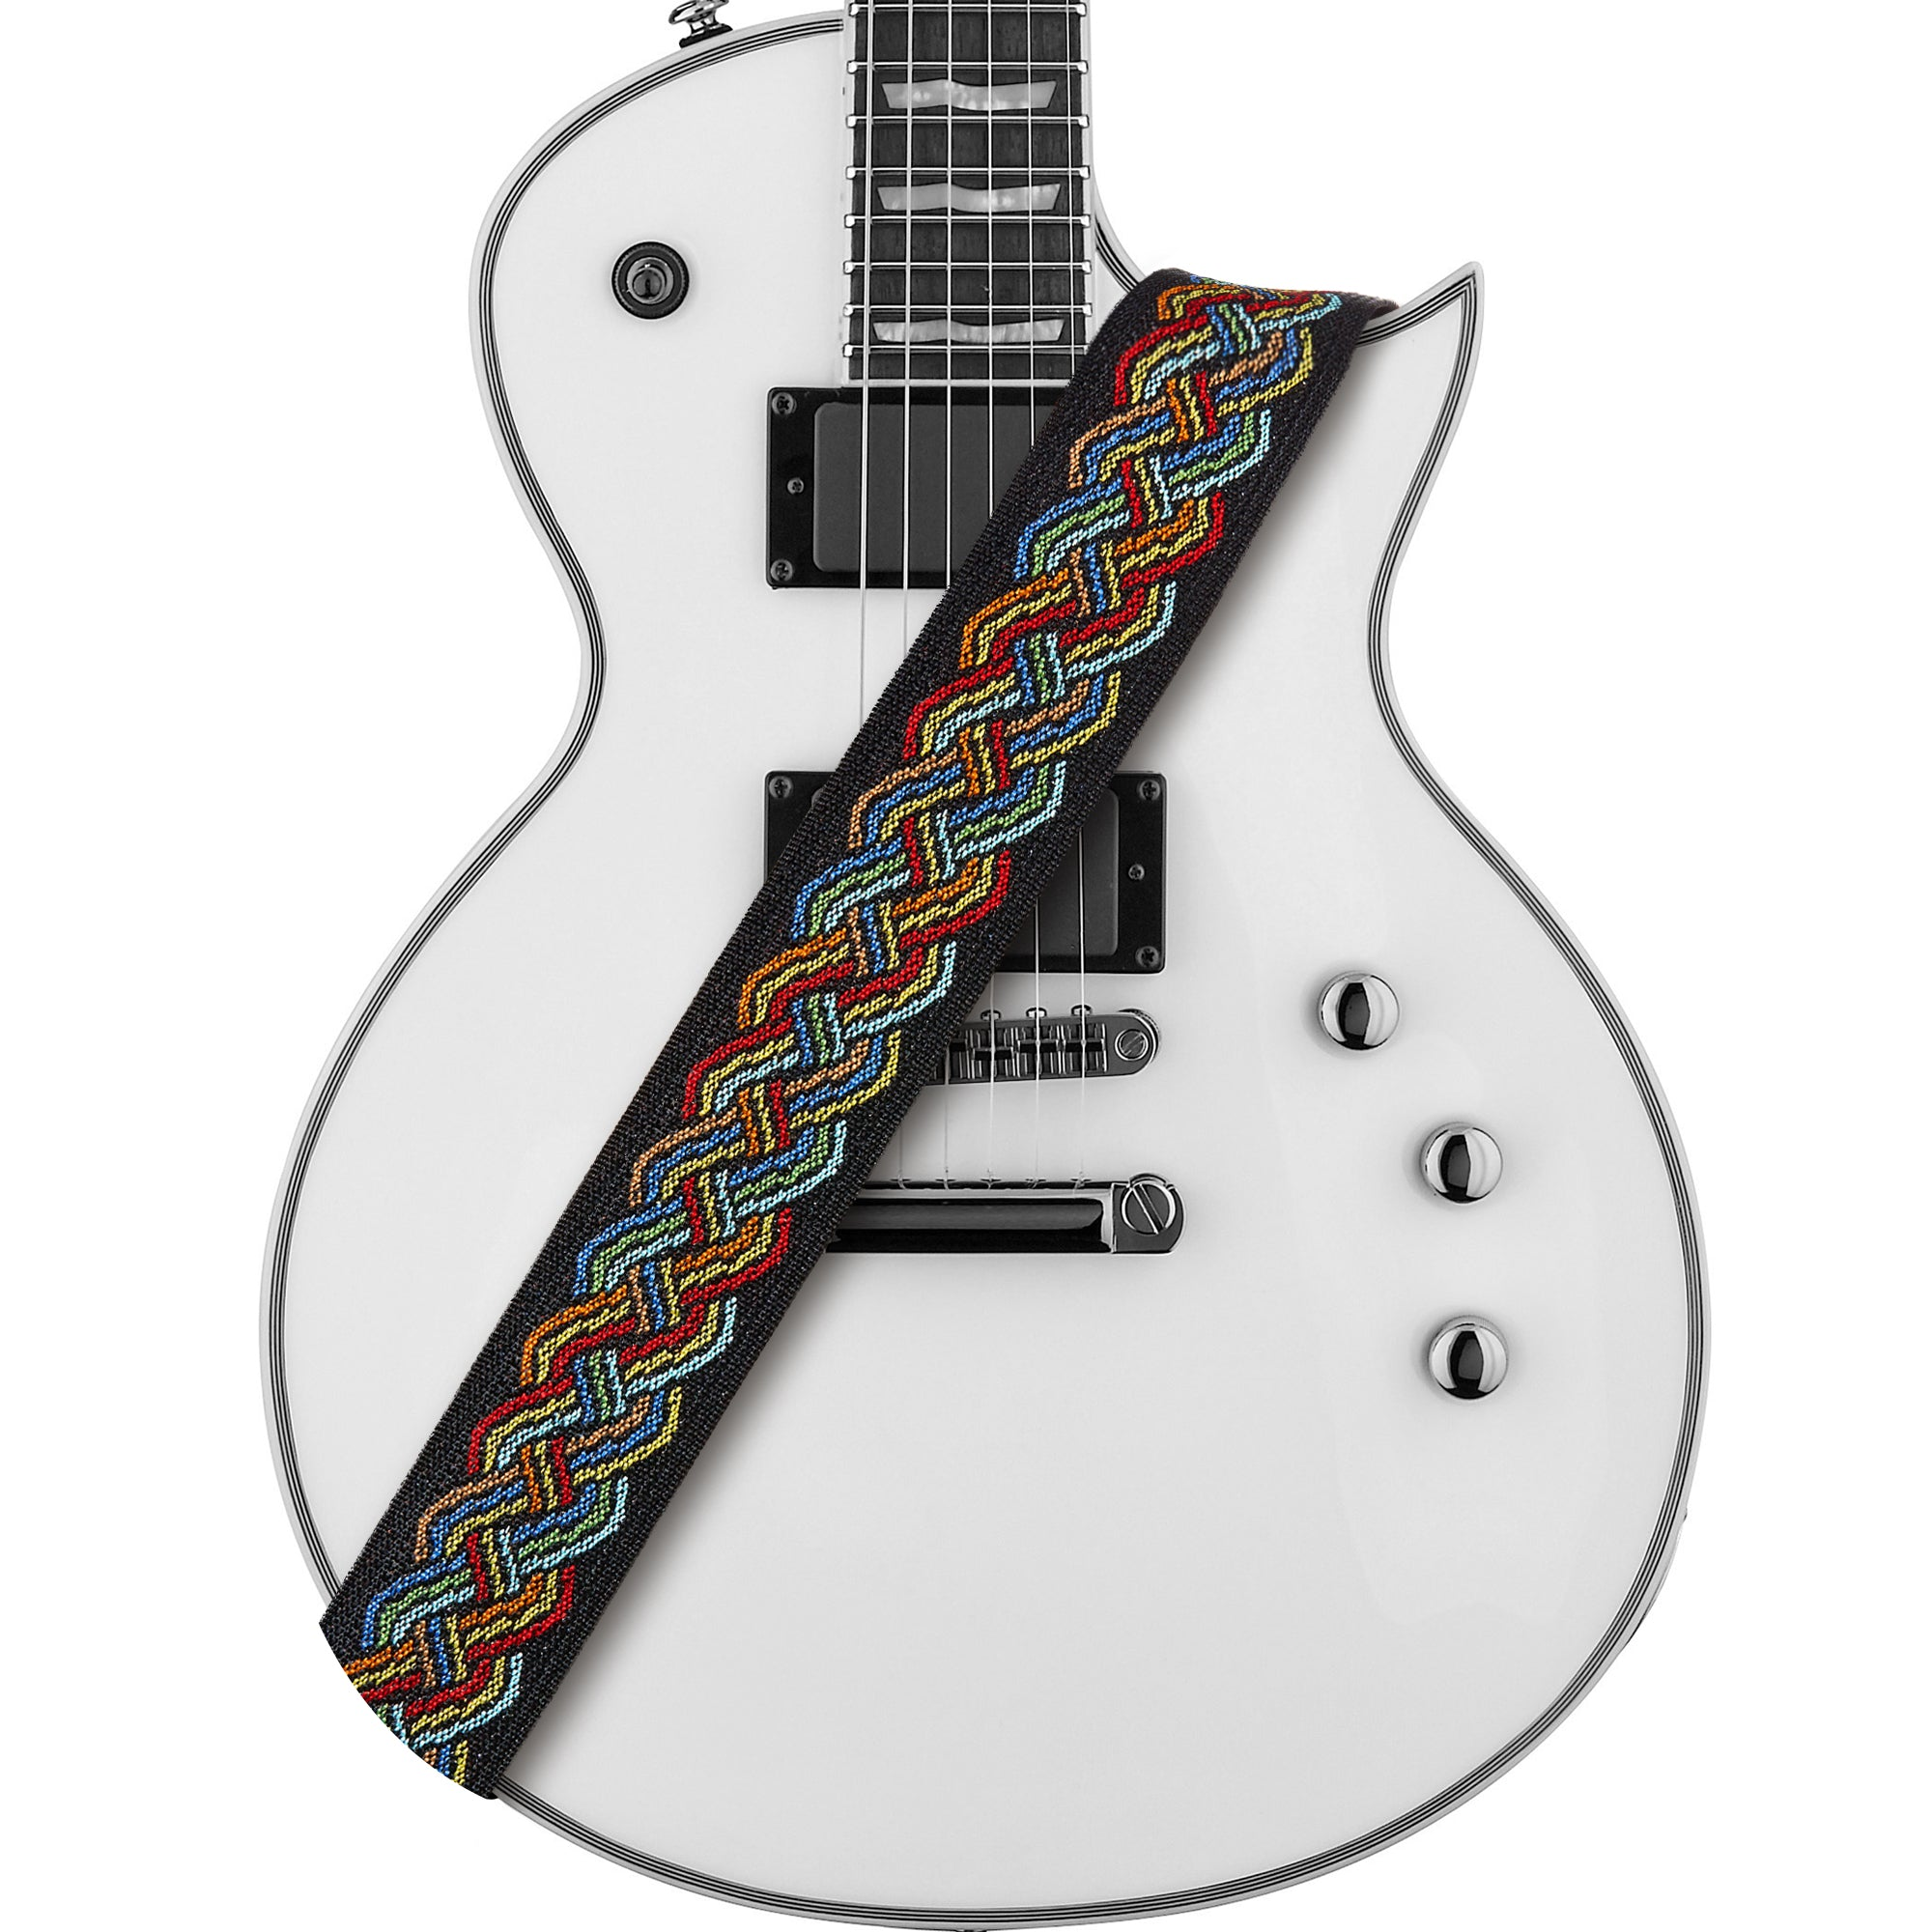 Amumu Celtic Knot Guitar Strap Multi-Color Polyester